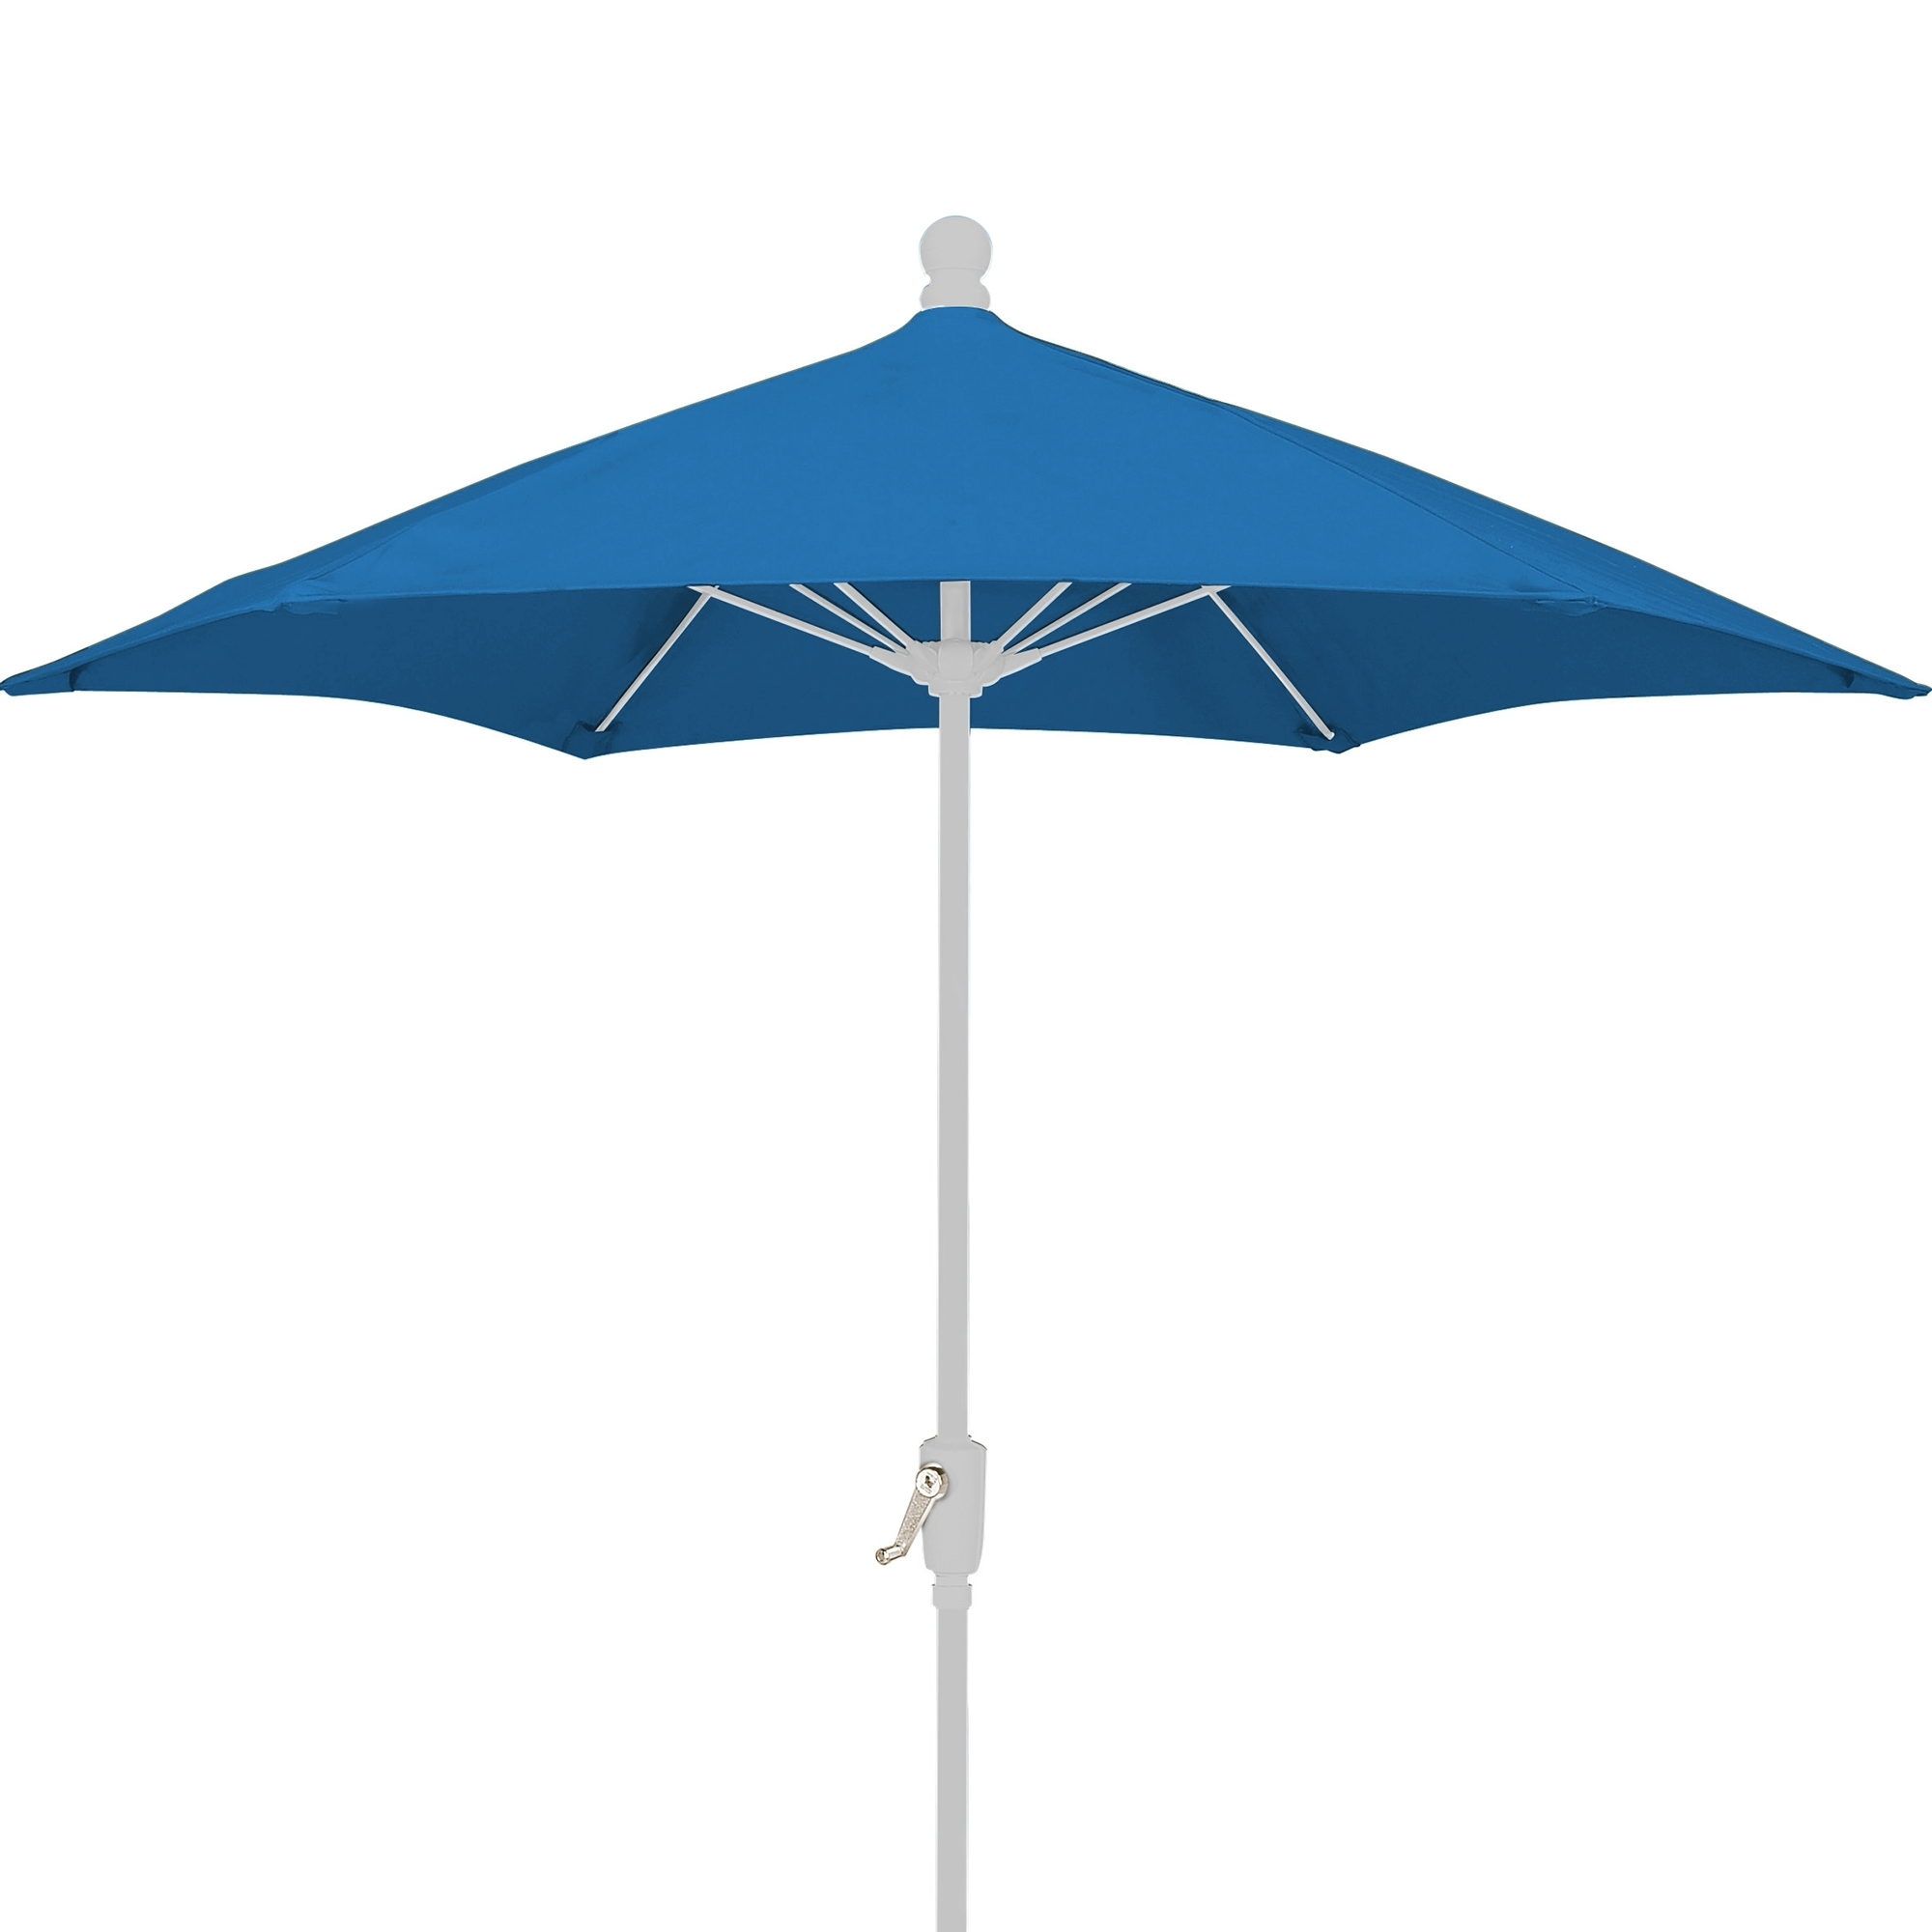 Patio Umbrellas With White Pole Regarding Well Liked (View 6 of 20)